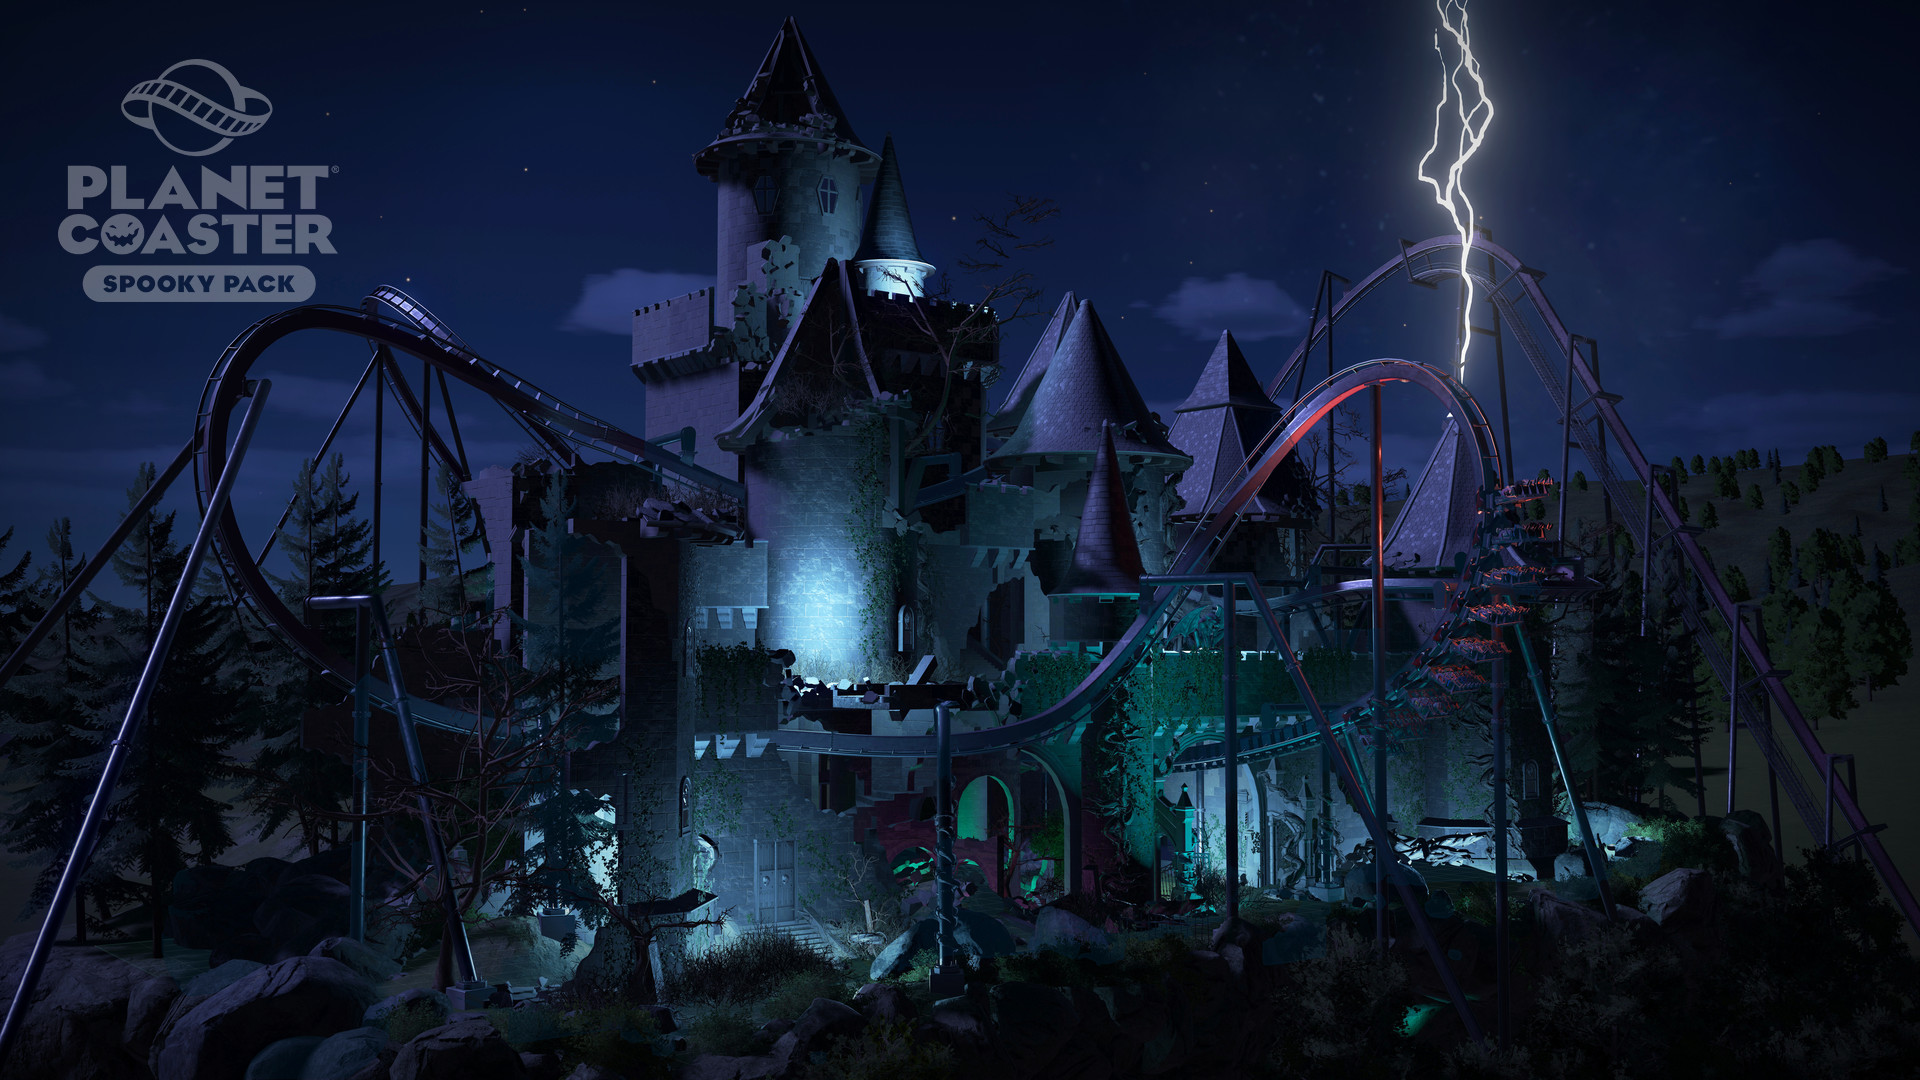 Spooky Pack - Planet Coaster